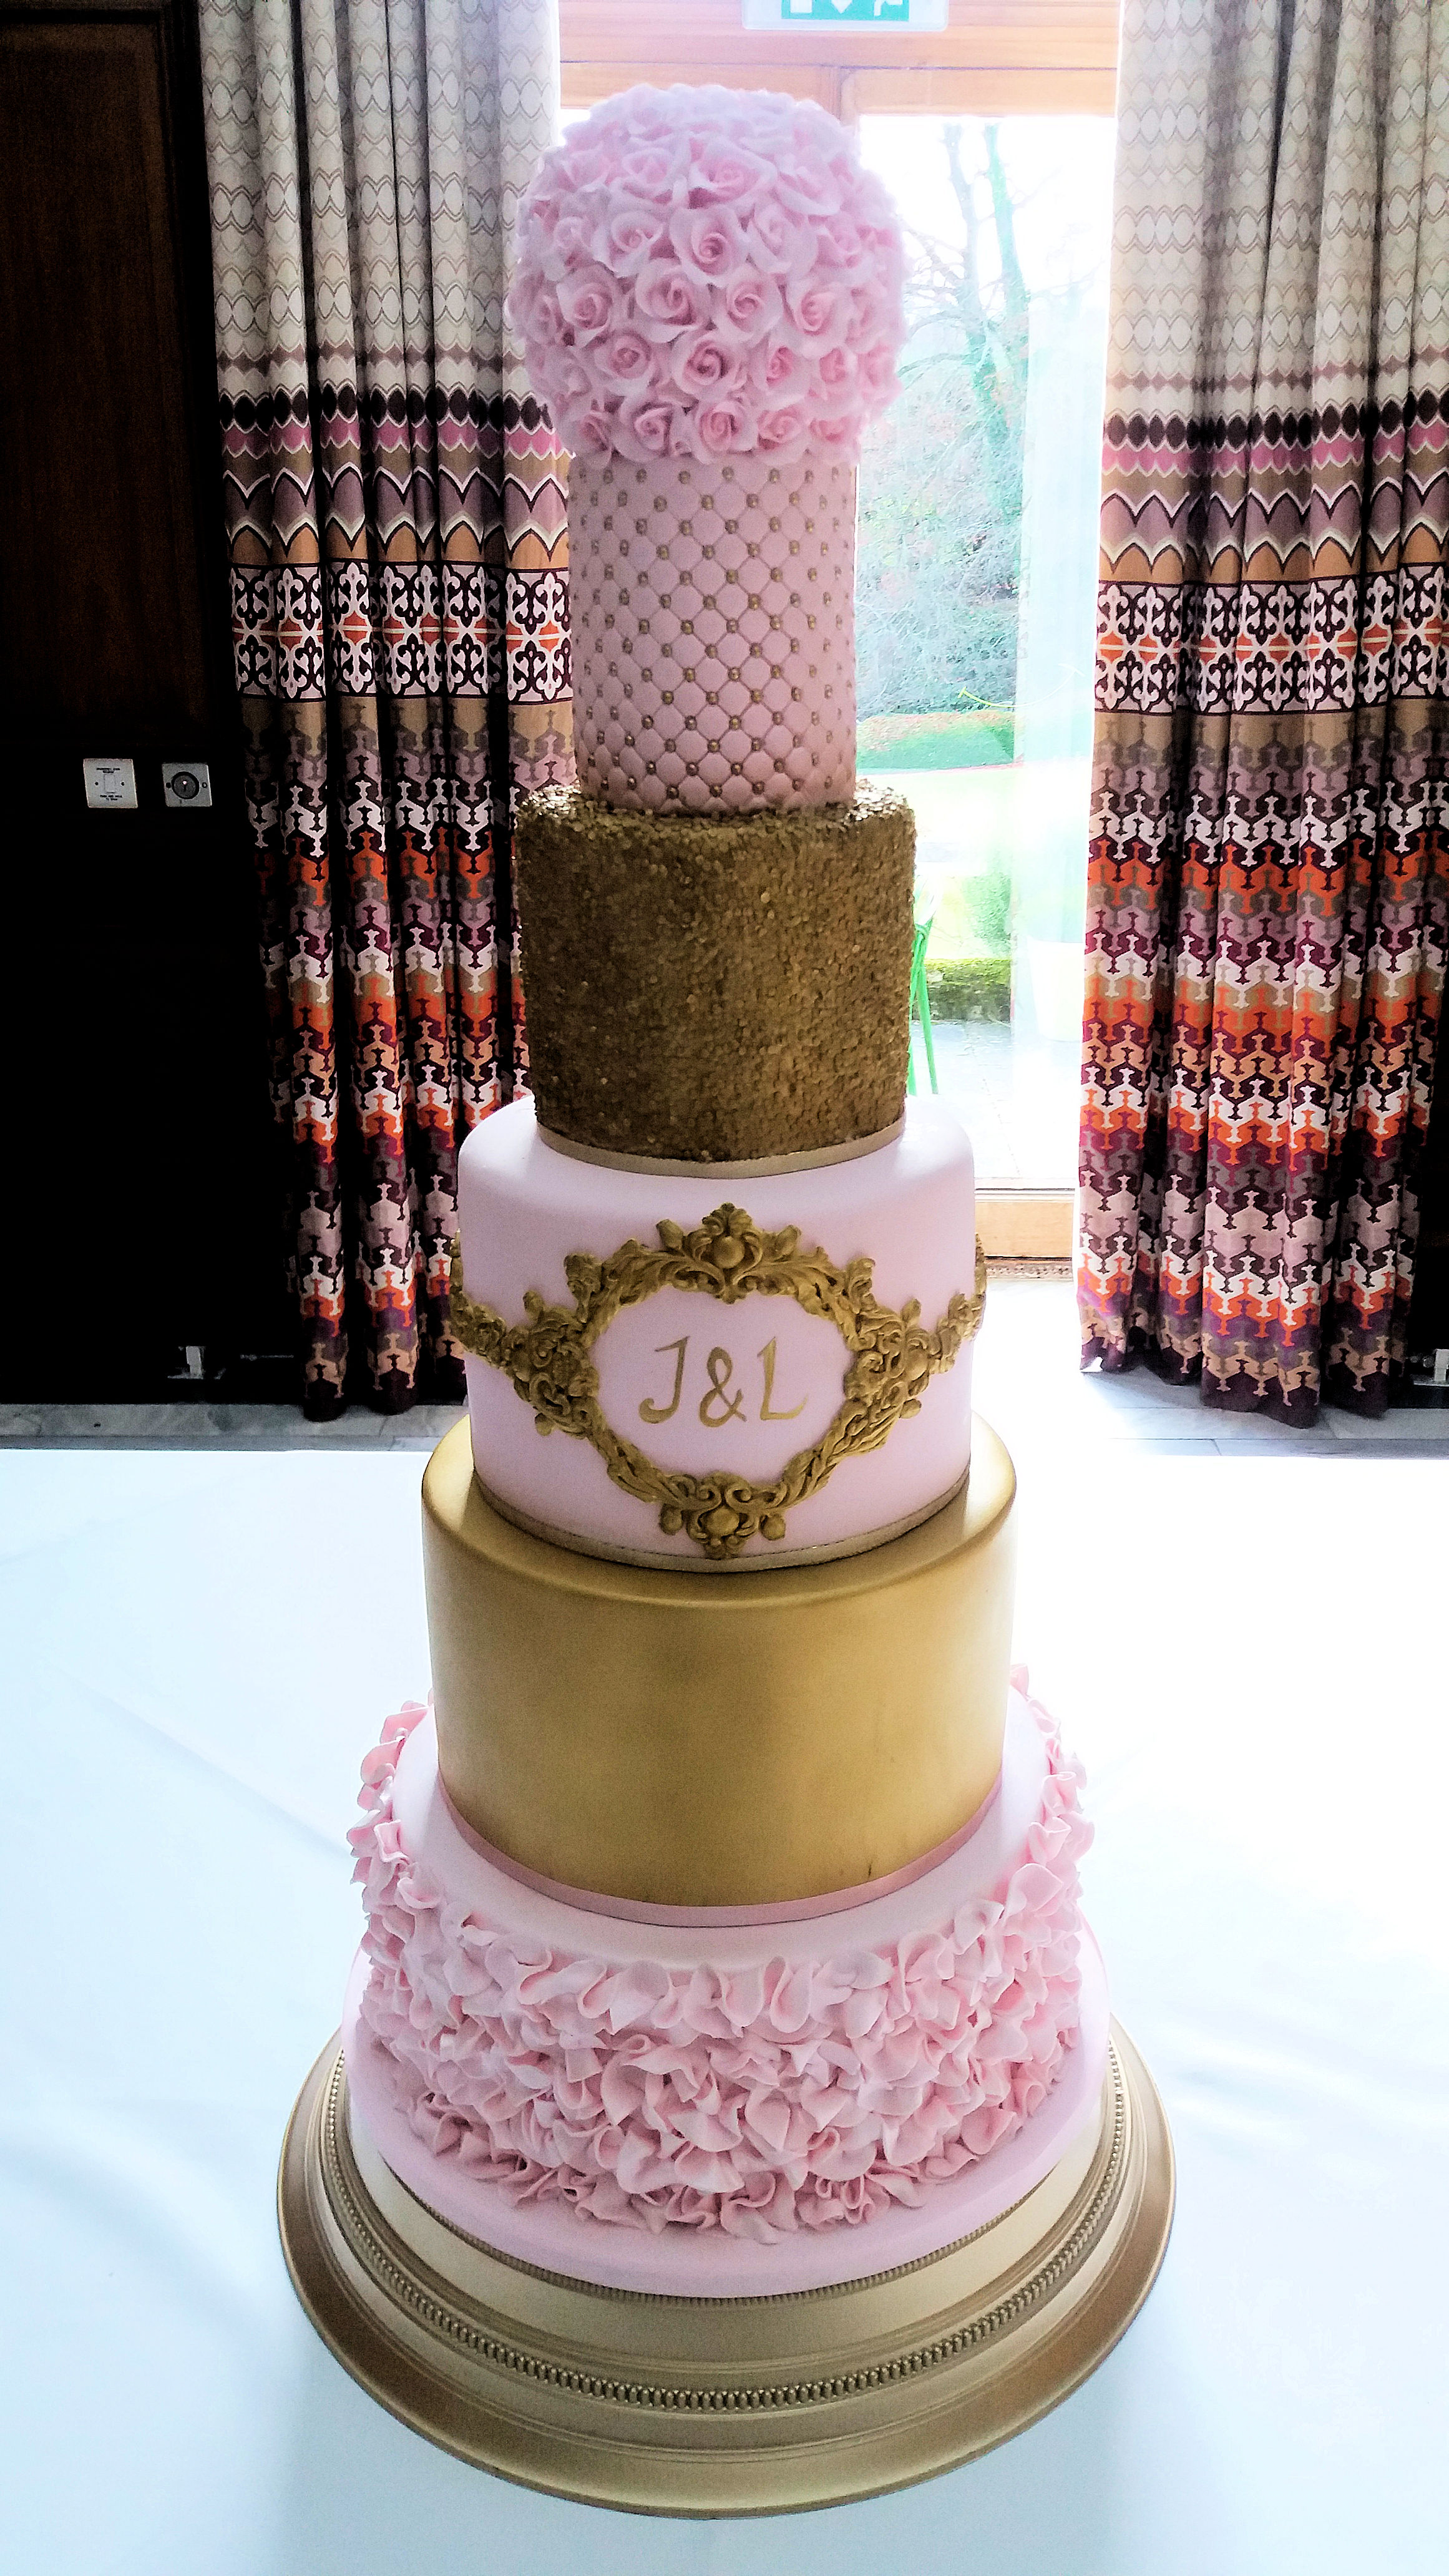 pink and gold weddding cake 6 tiers